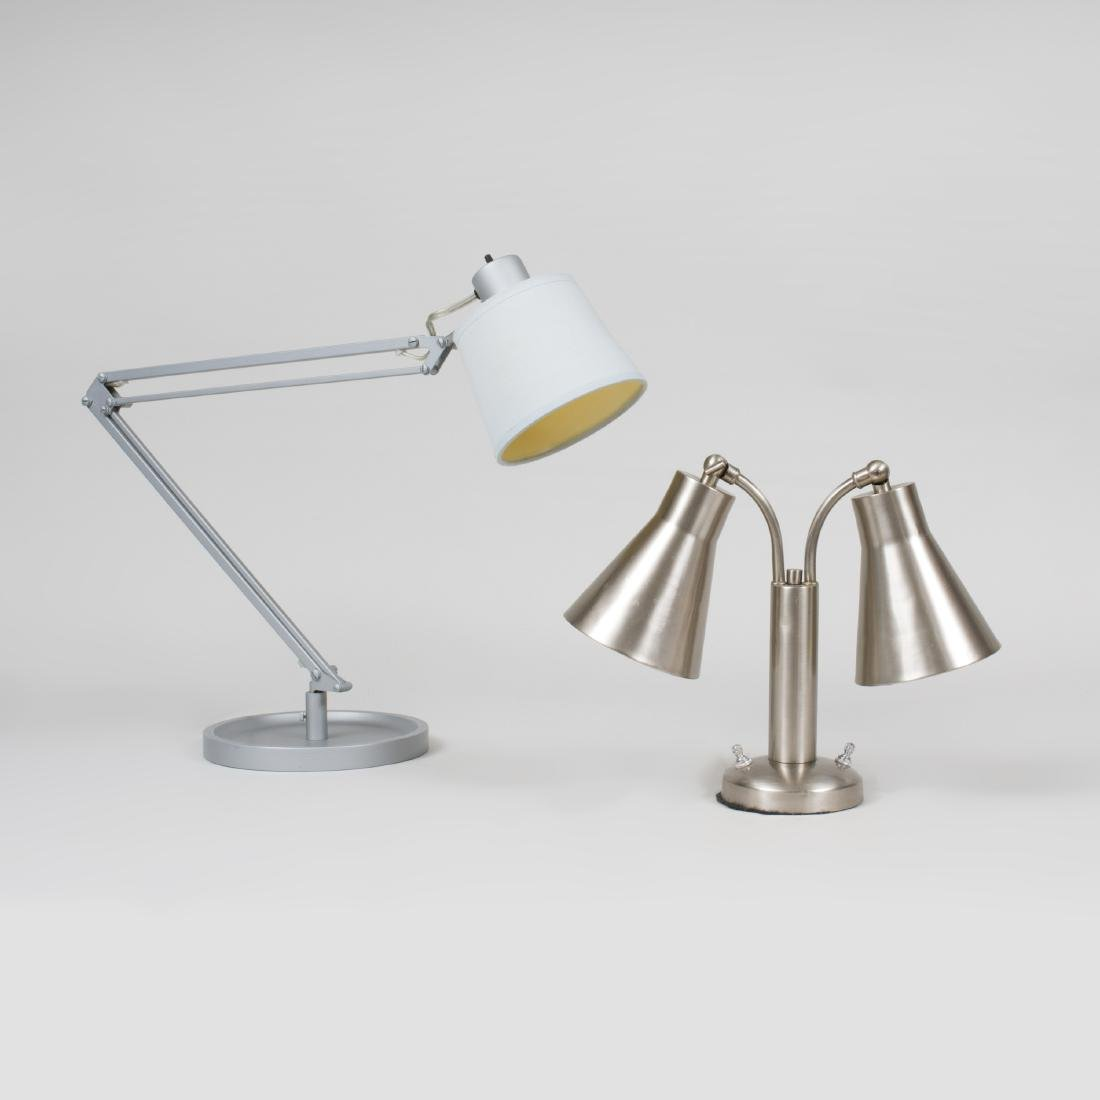 Pair of French Painted Metal Architect's Lamps with